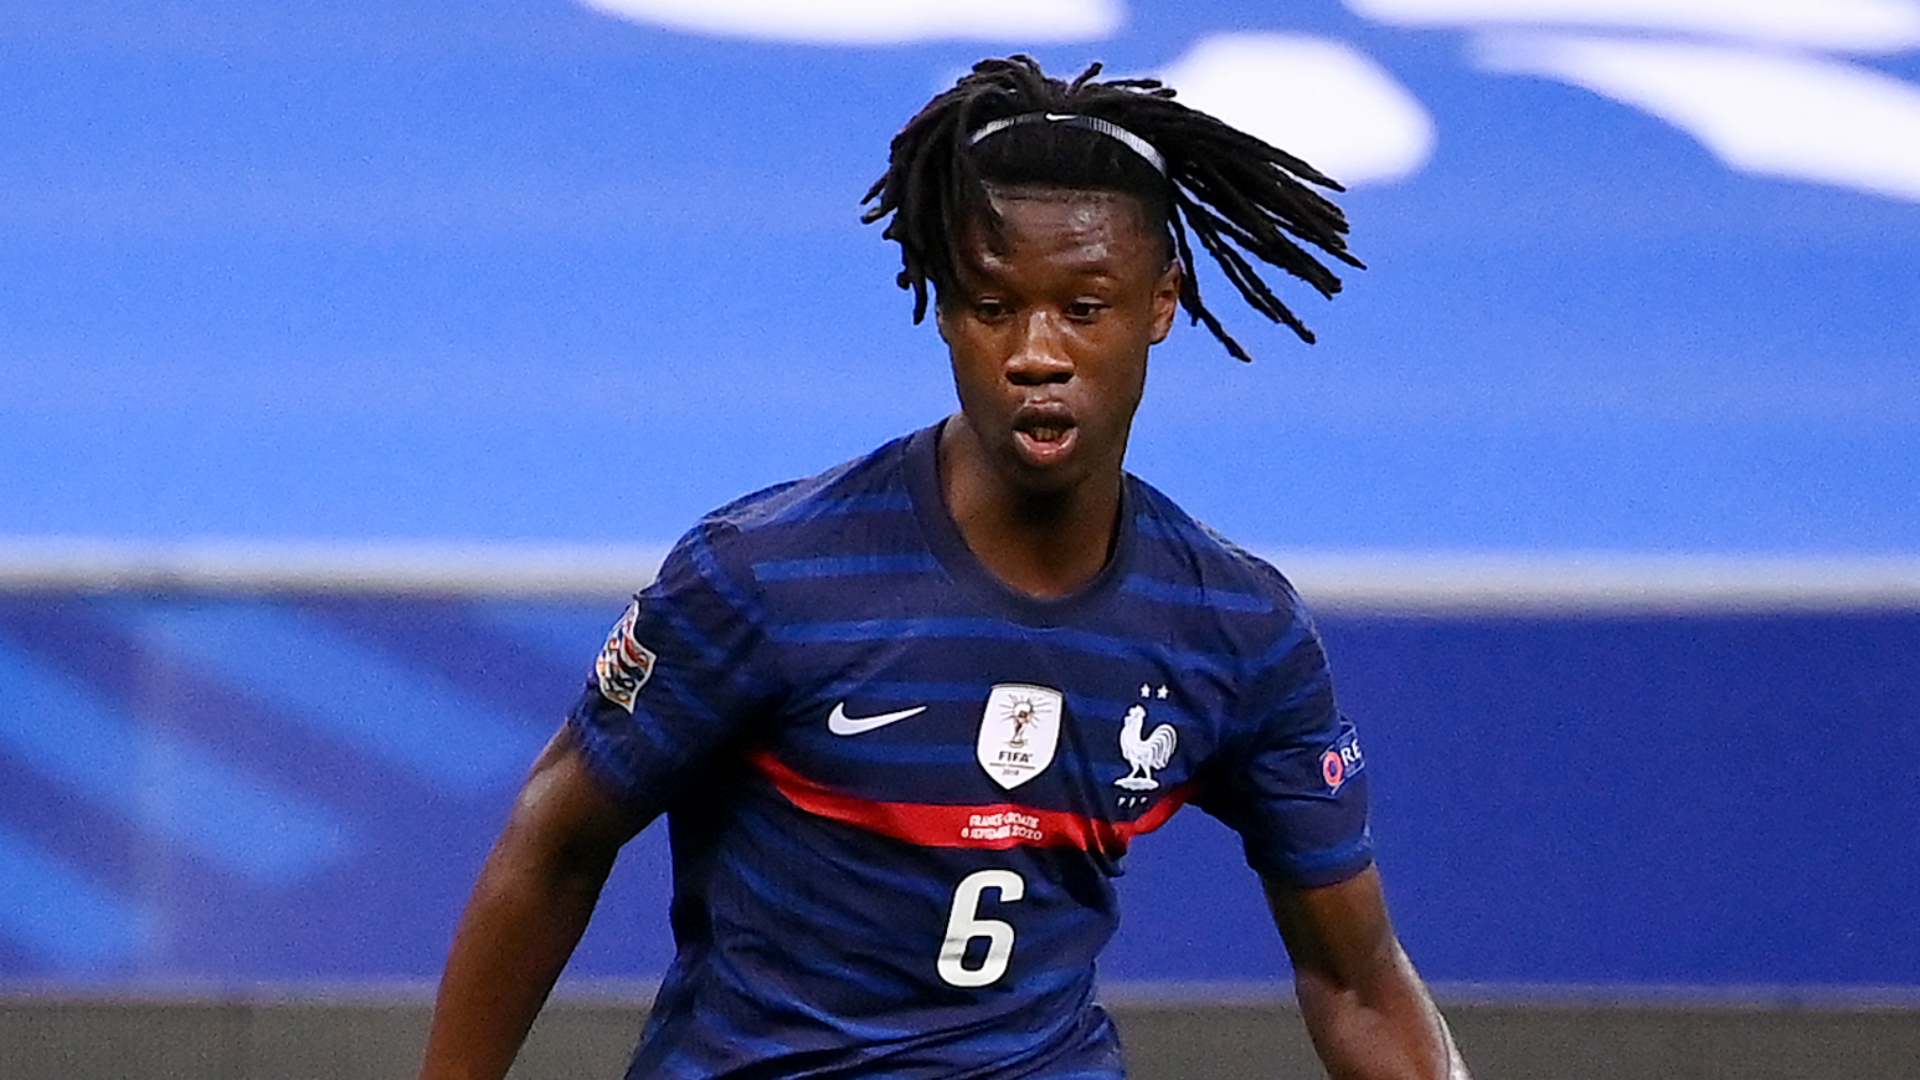 Camavinga would be a good signing for PSG - Tuchel